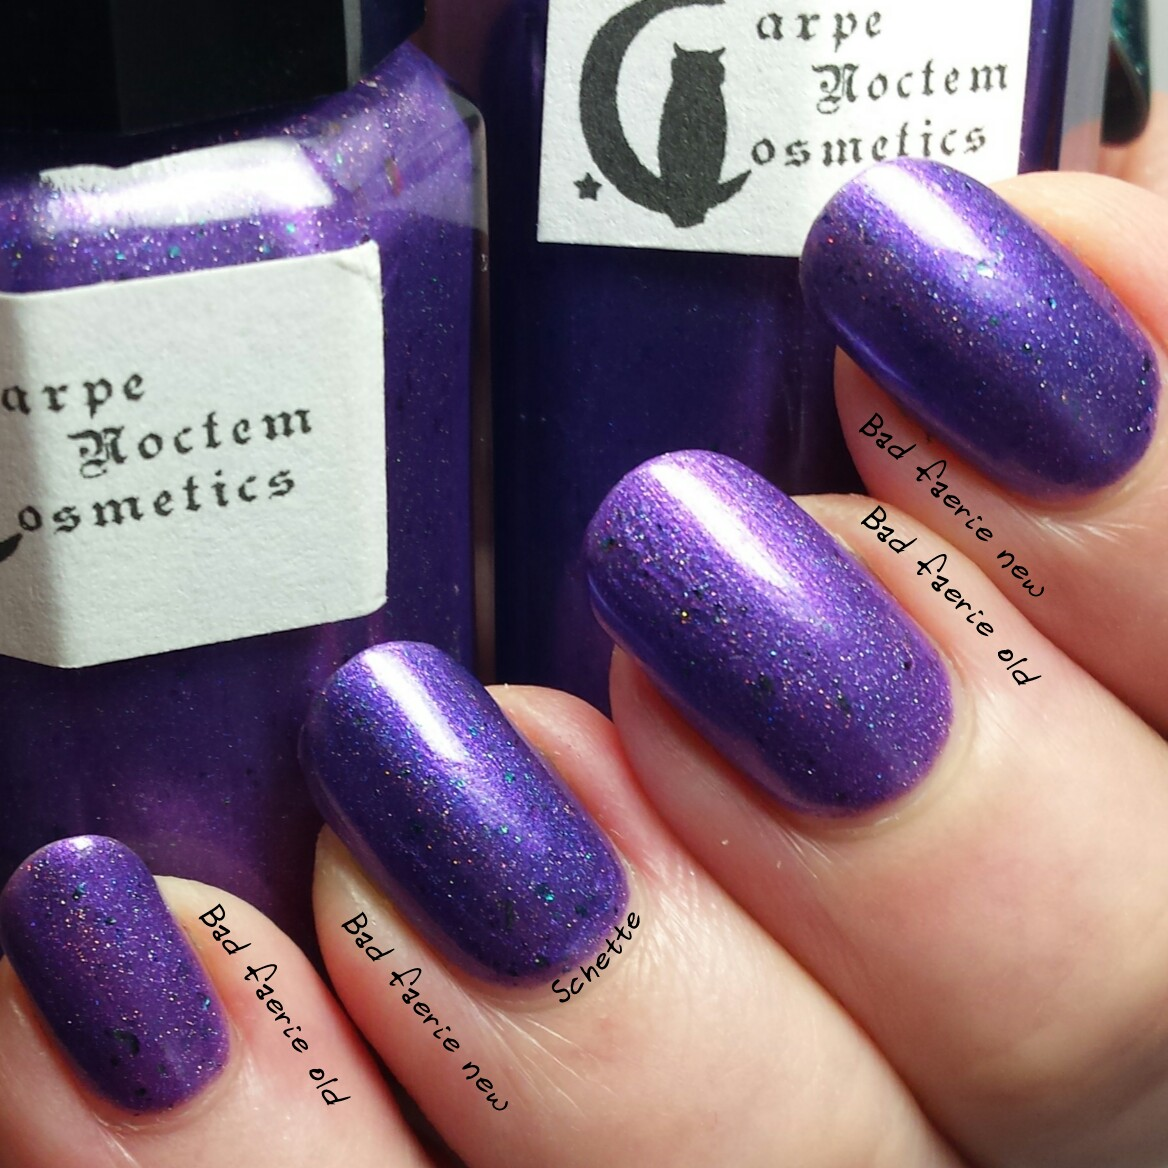 Carpe Noctem Cosmetics : Bad Faerie : Old and new version